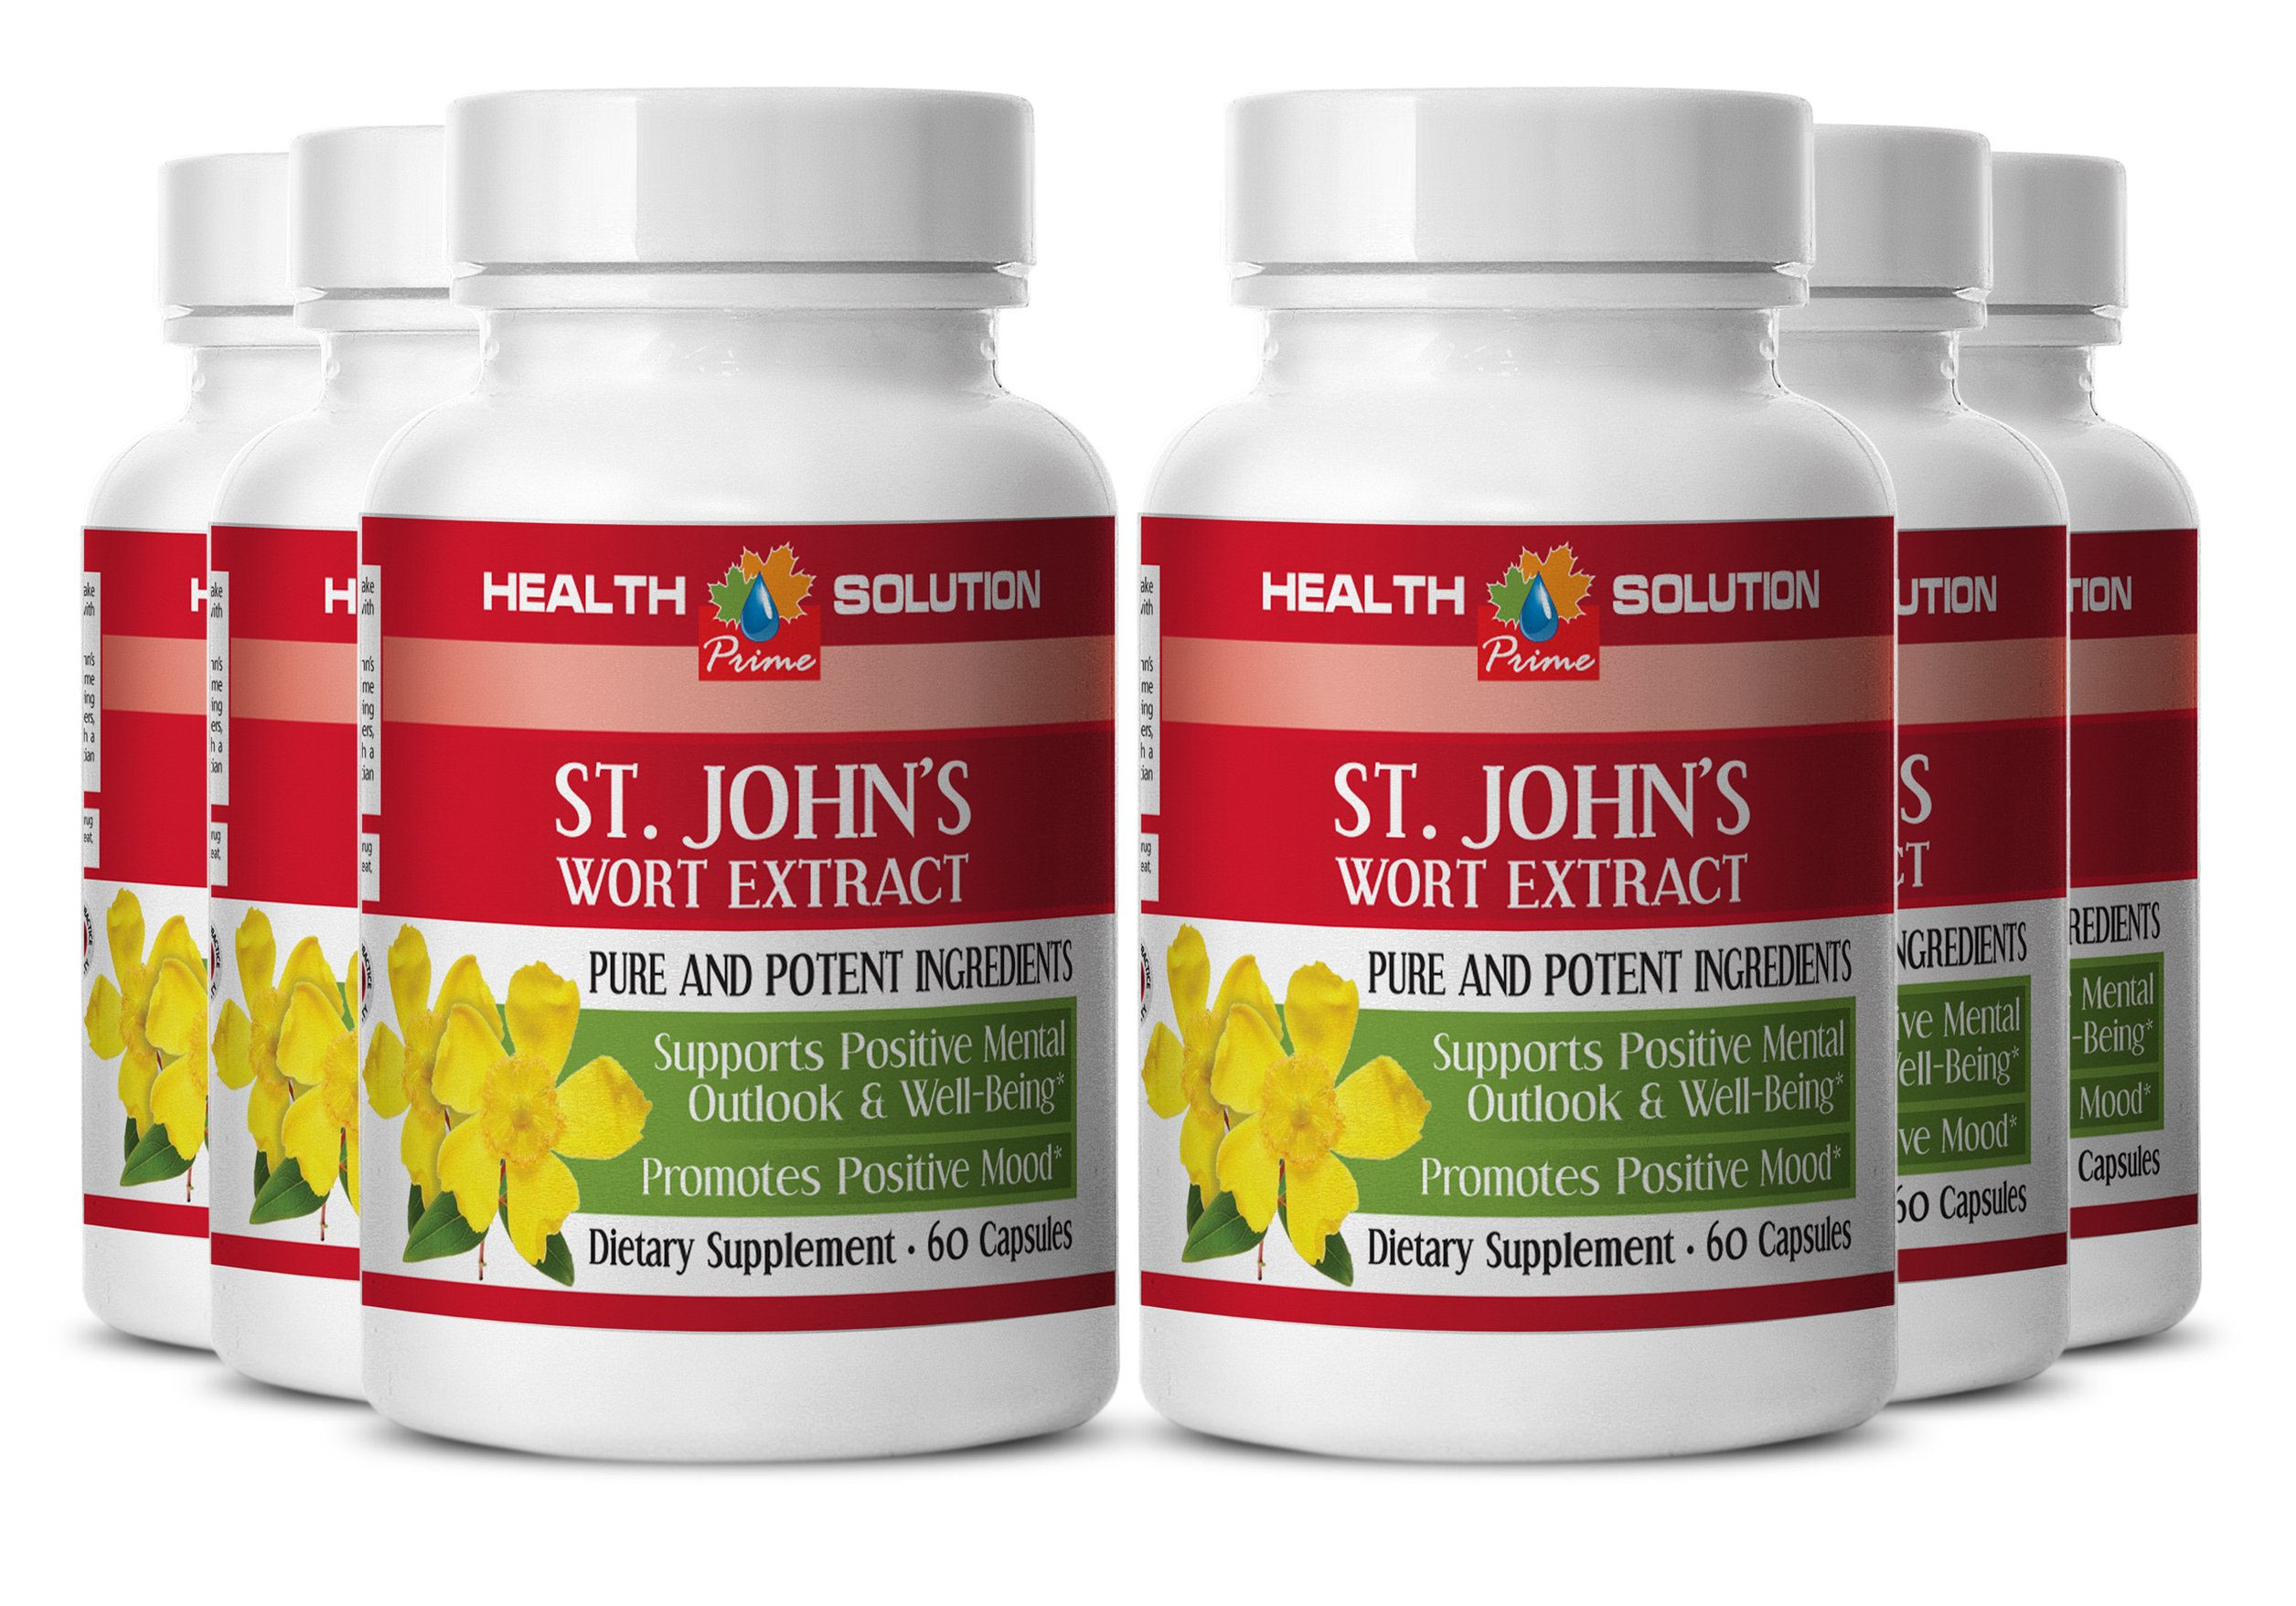 ST JOHN'S WART HERB EXTRACT With Siberian Eleutherococcus and Gingkgo Biloba - Energy booster - 6 Bottles 360 Capsules by Health Solution Prime